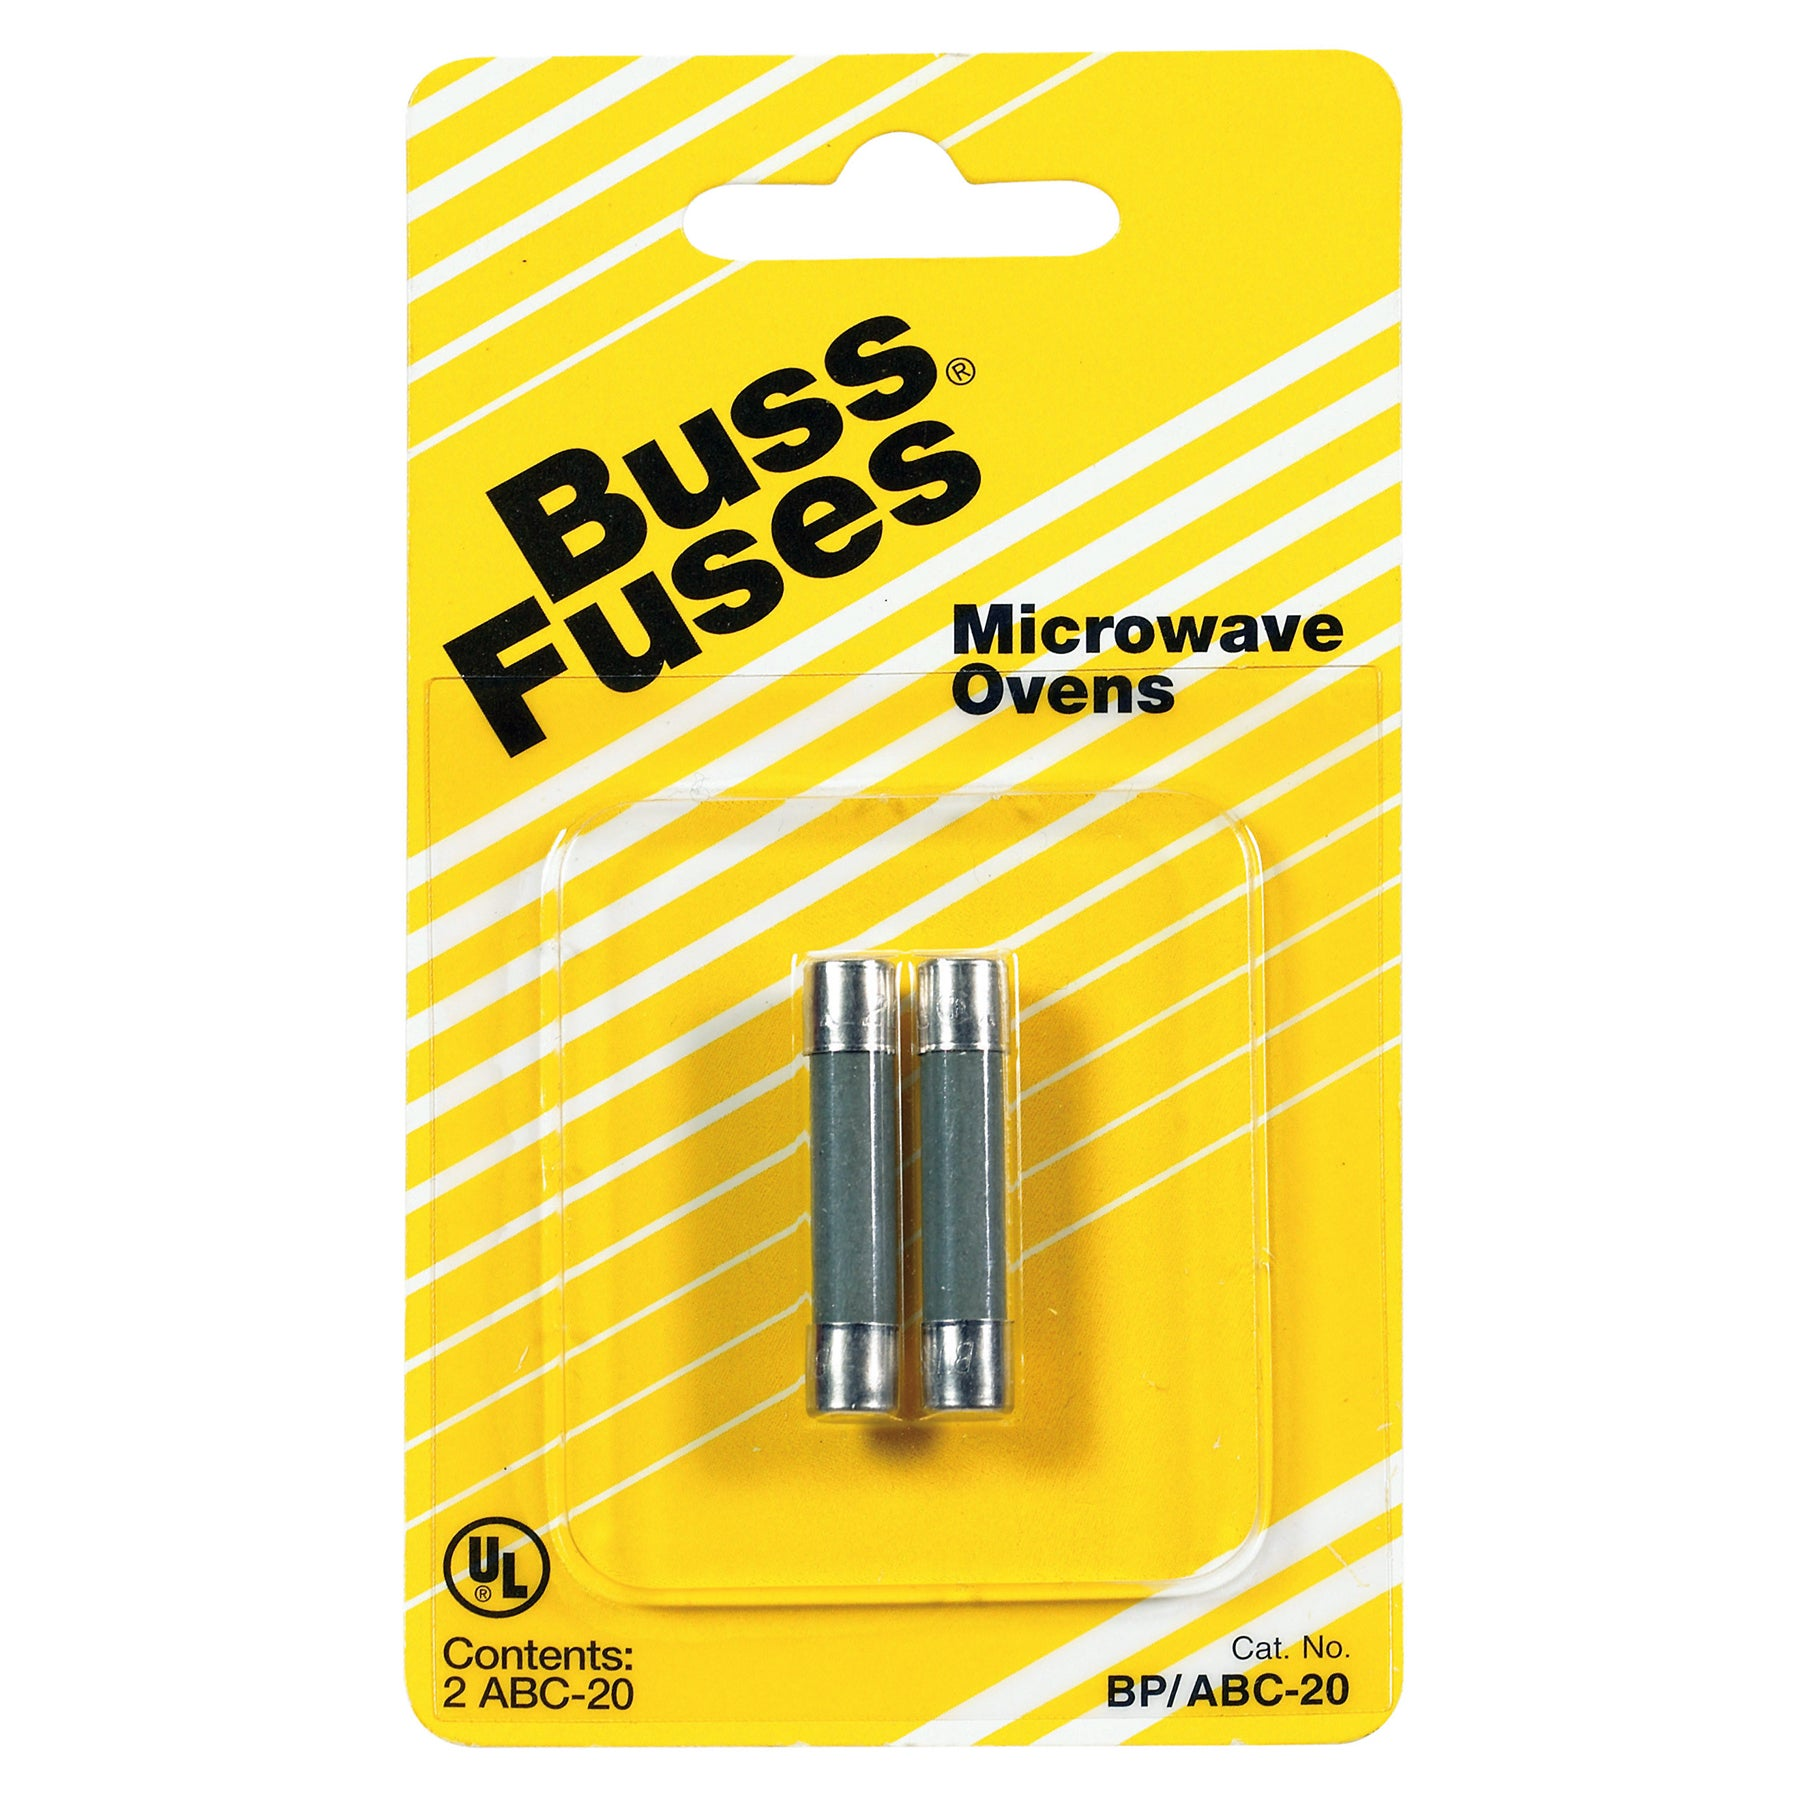 Bussmann n Fast Acting Fuse 20 amps 250 volts 1/4 in. Dia...